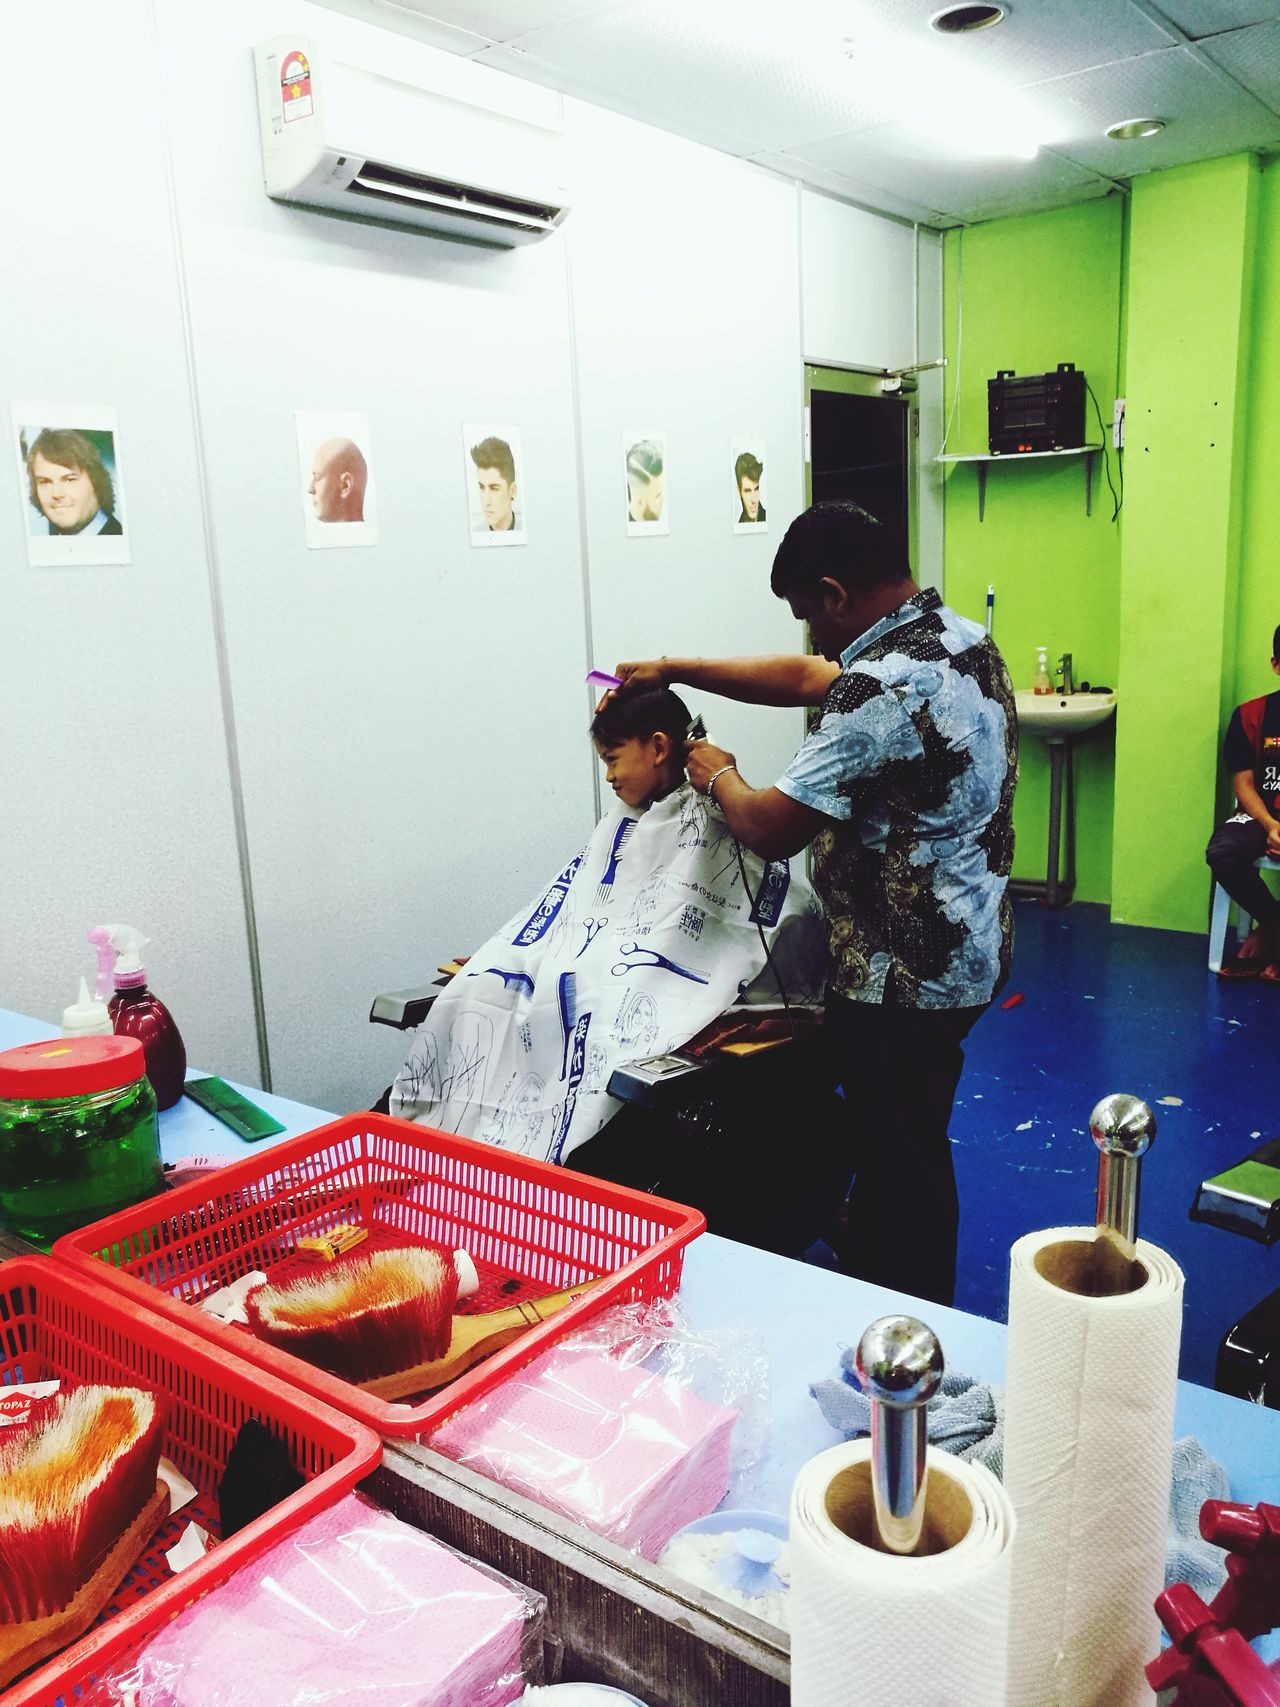 gunting rambut Hairstyle Haircut Hairdresser Hairstylist Hairsalon Kids Kid Kids Are Awesome Kids Photography